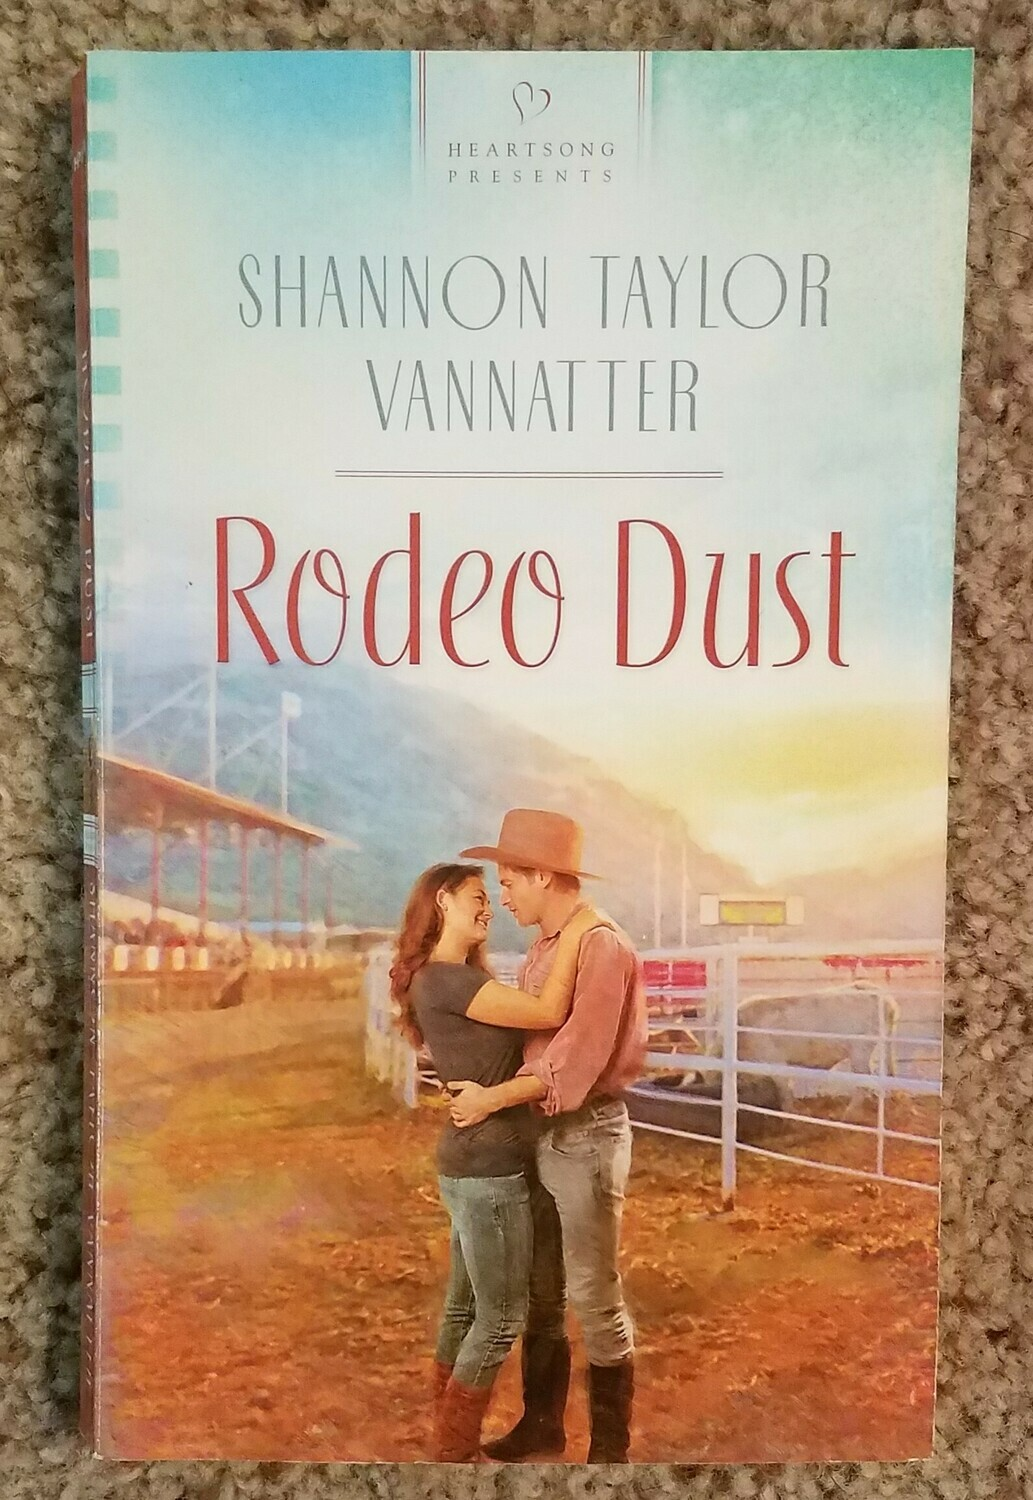 Rodeo Dust by Shannon Taylor Vannatter